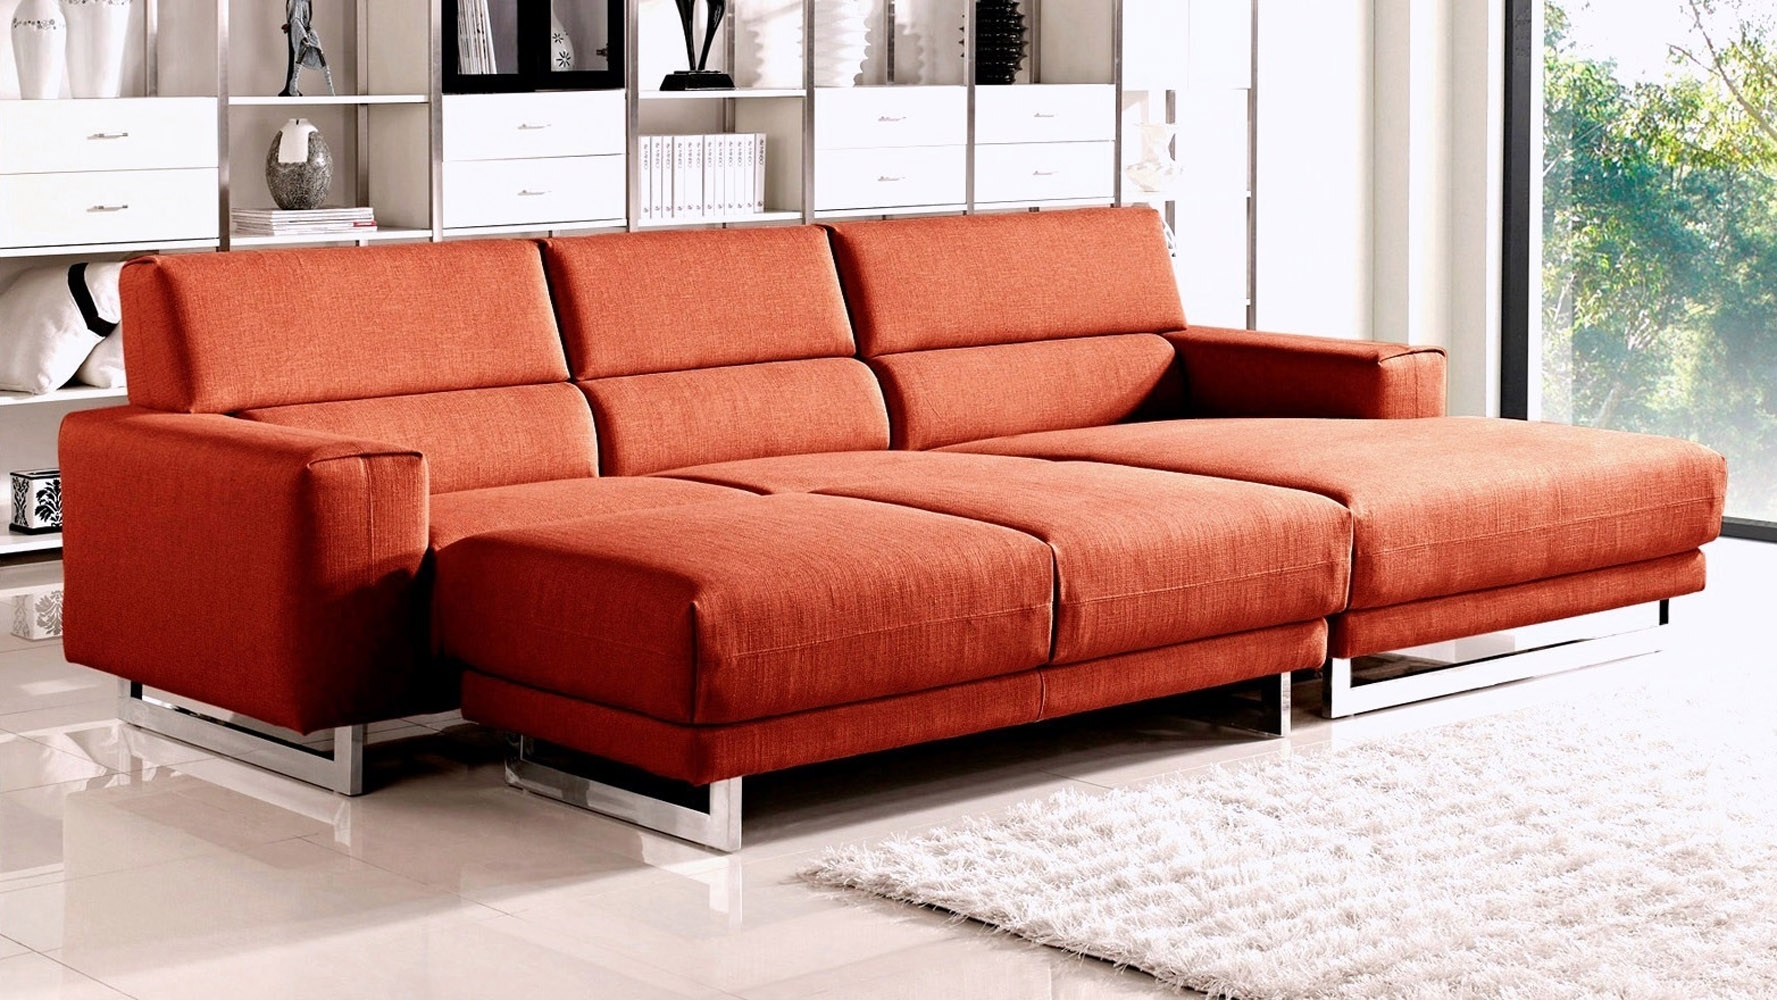 Ottoman Sleeper Sofa, Popular Comfortable Sectional Sofas Fabric with regard to Sectional Sleeper Sofas With Ottoman (Image 12 of 15)